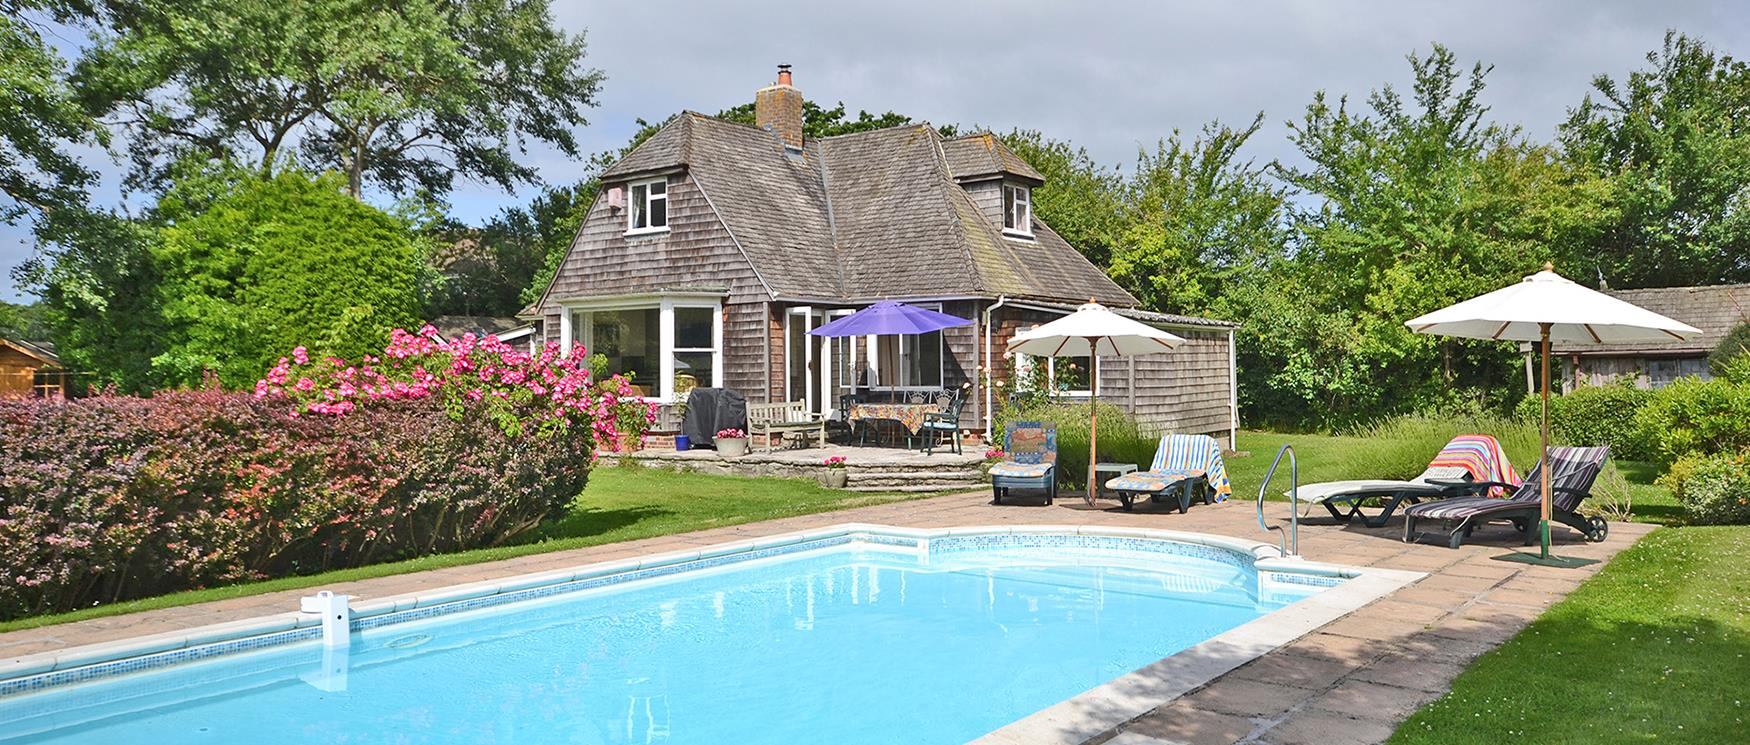 Discover Self Catering Properties in Hampshire for your Spring Break